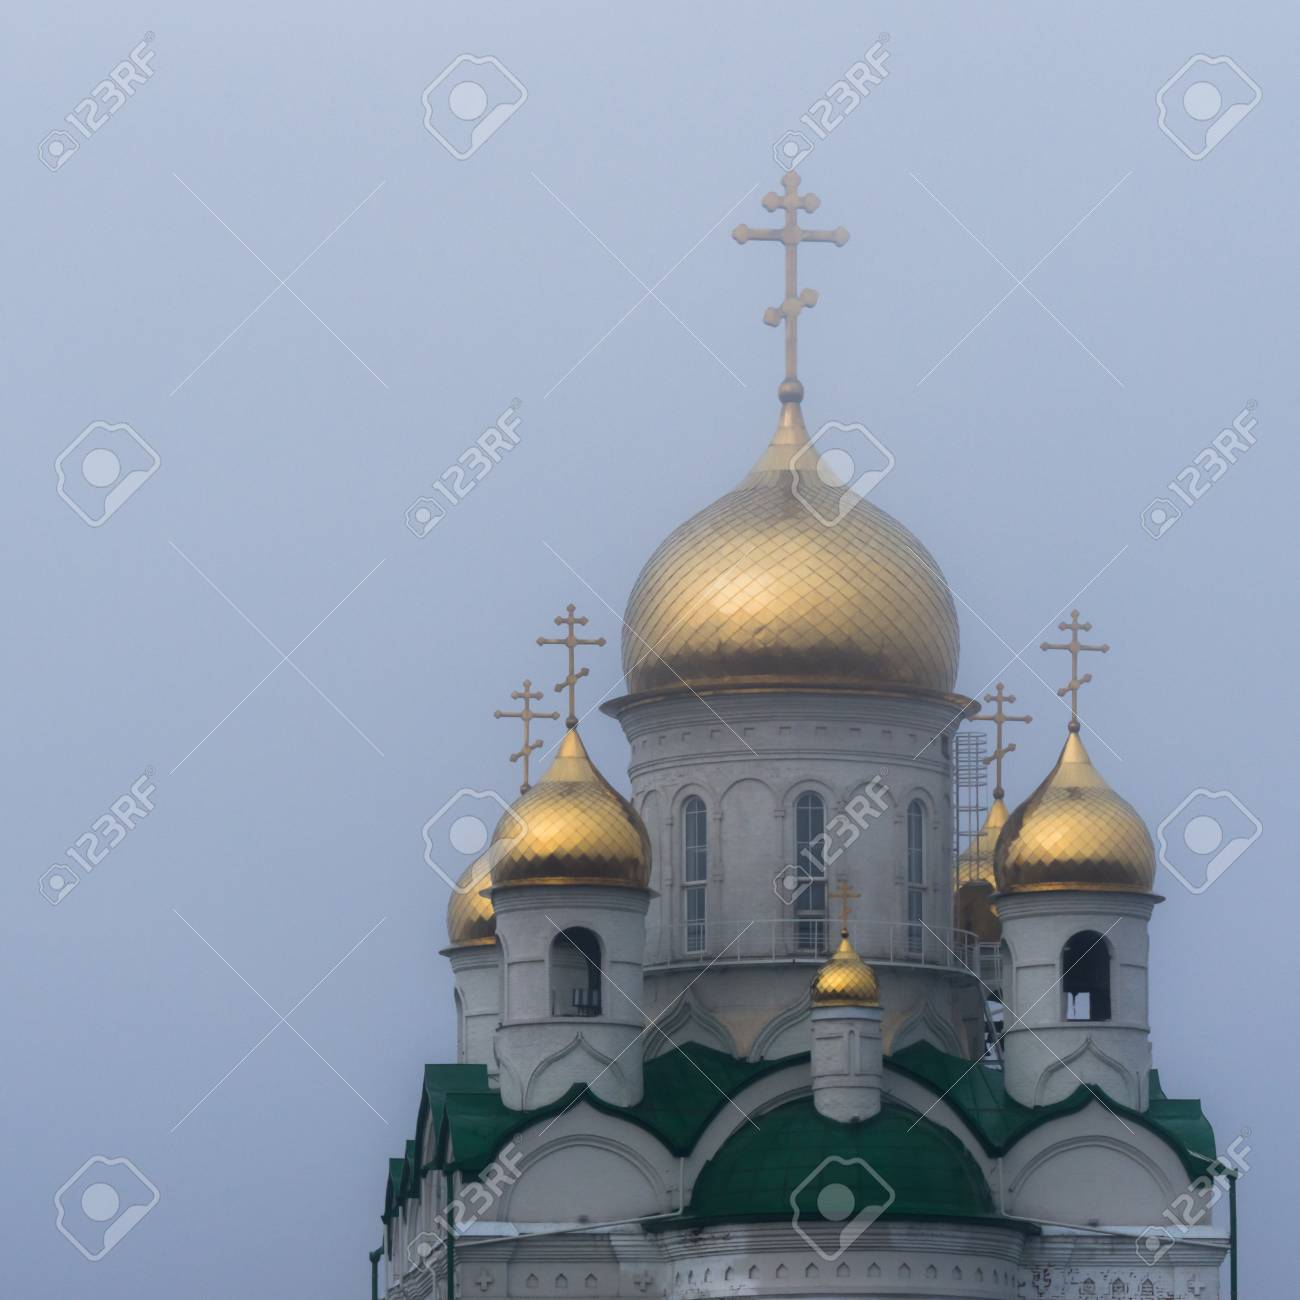 Golden domes of a Russian Orthodox Church in Barnaul, Russia,